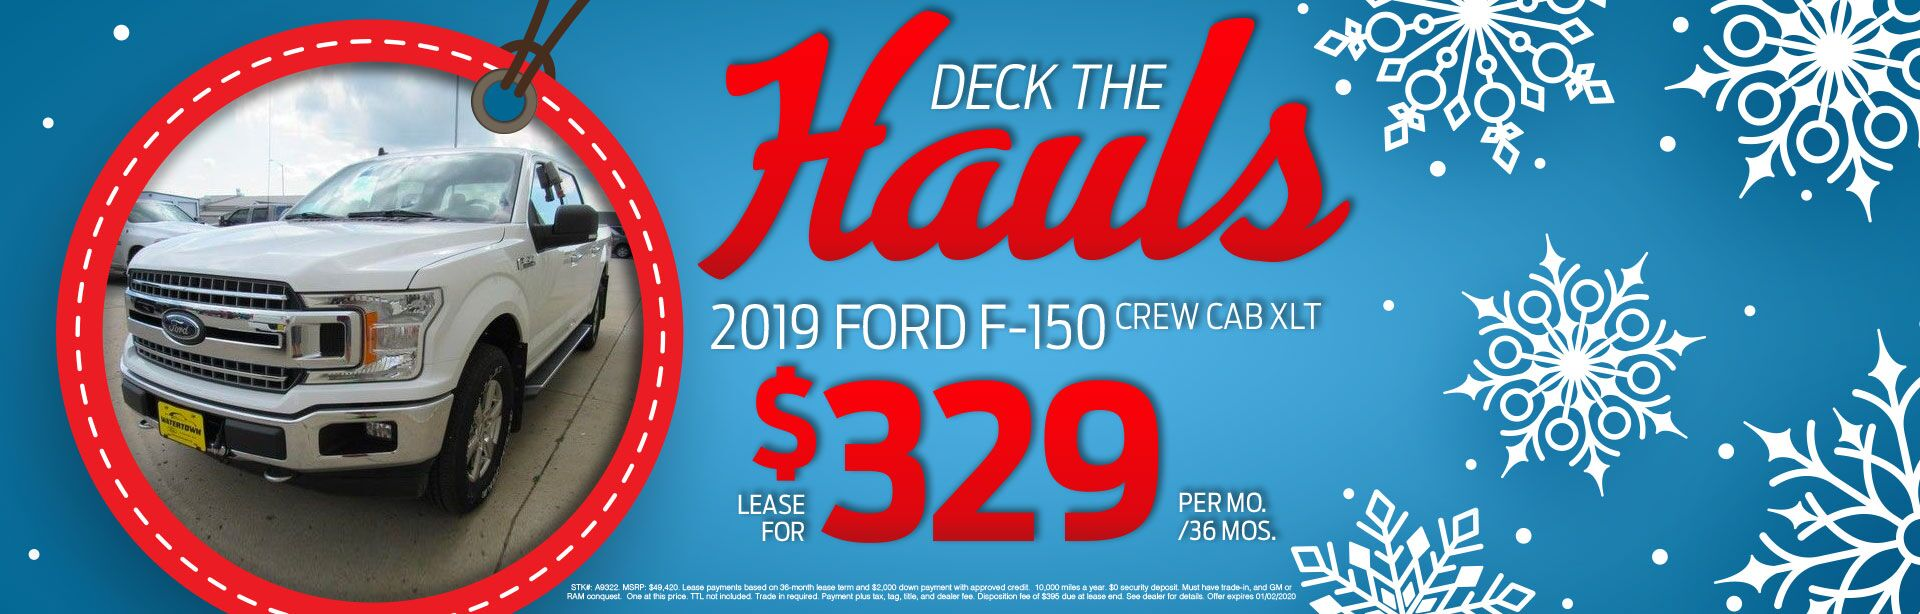 2019 Ford F-150 Crew Cab XLT Lease for $329 Per Month For 36 Months